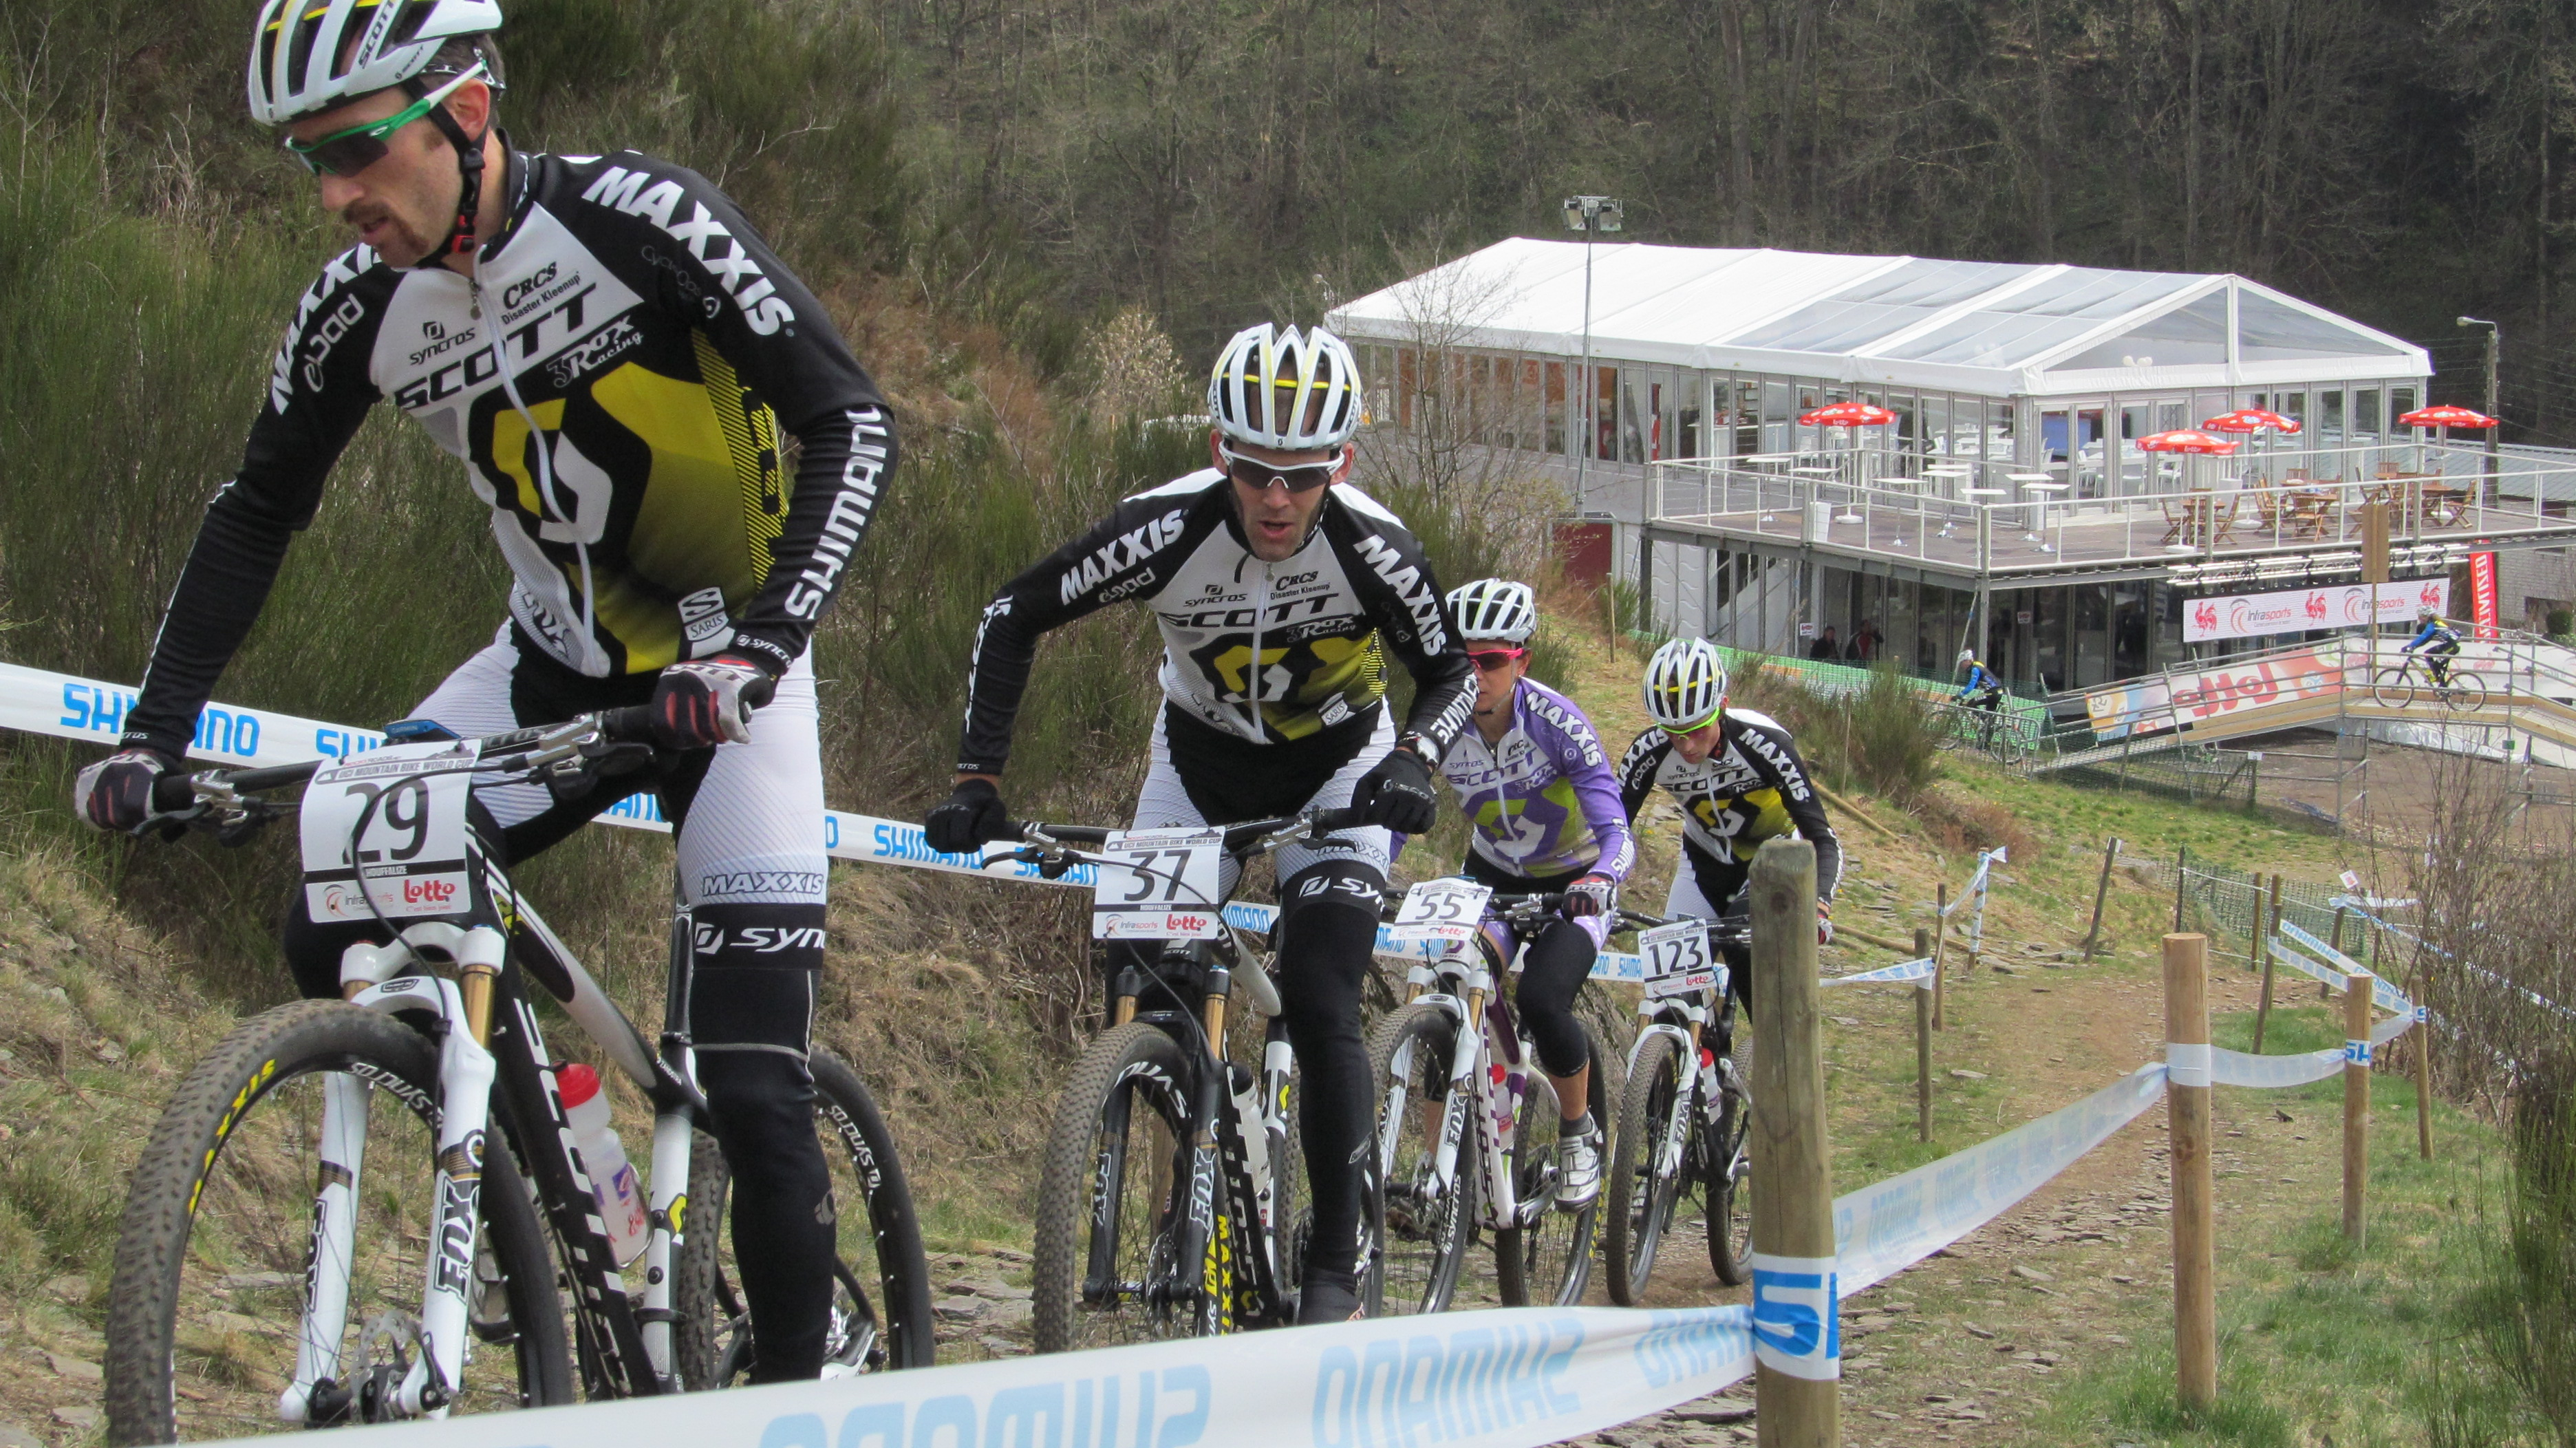 Stages Cycling To Sponsor Scott 3rox Team Bicycle Retailer And